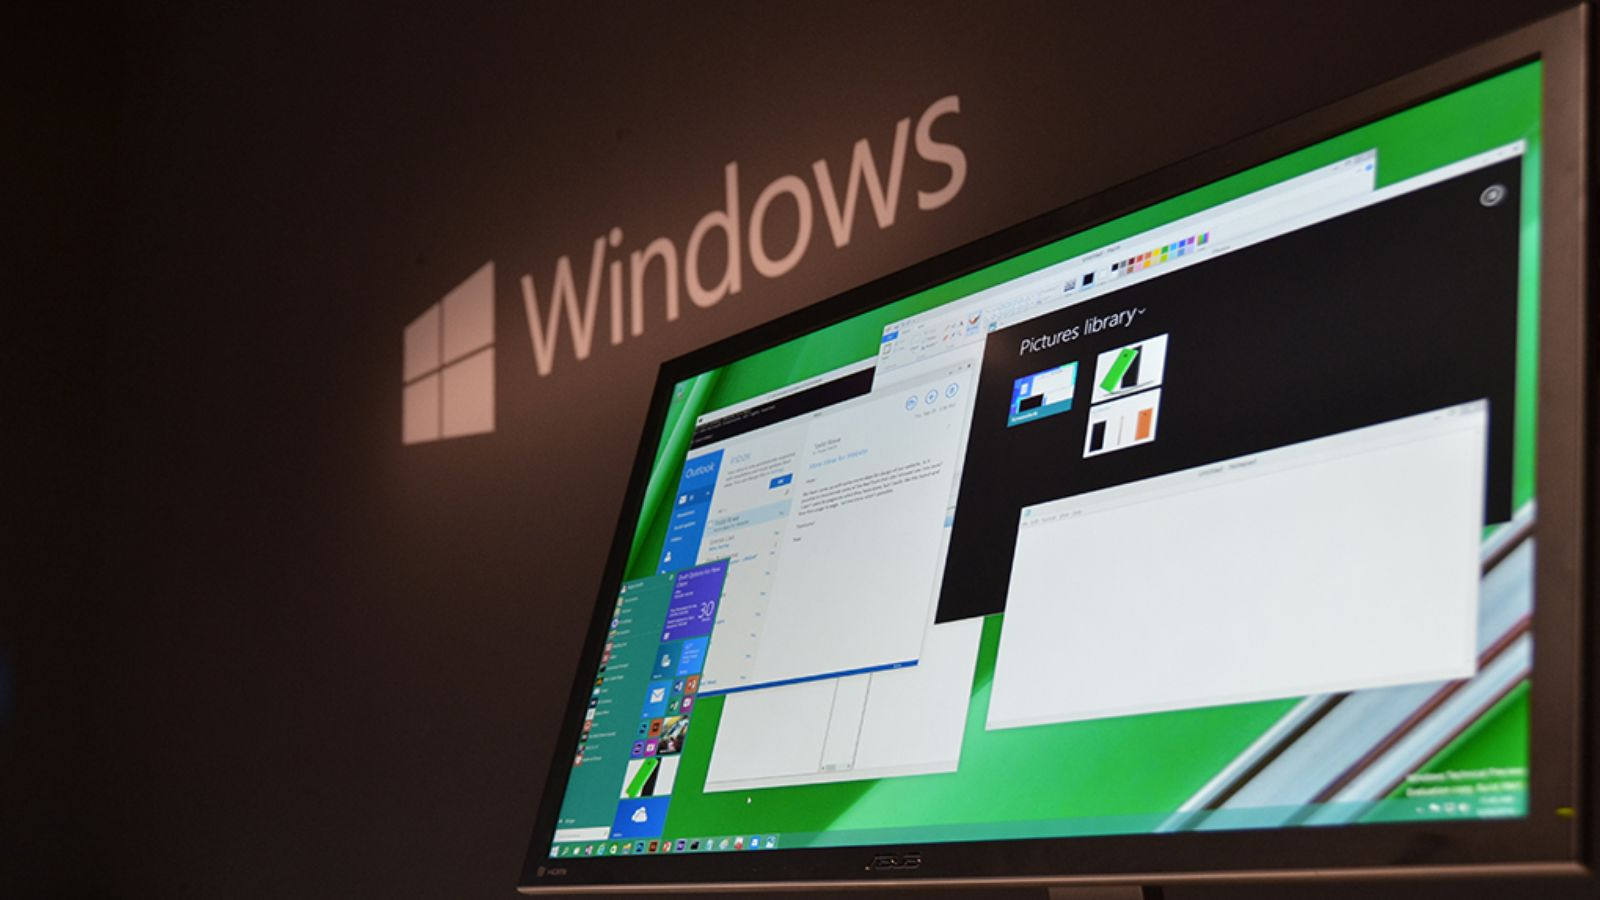 windows10handson1_1020.0.0